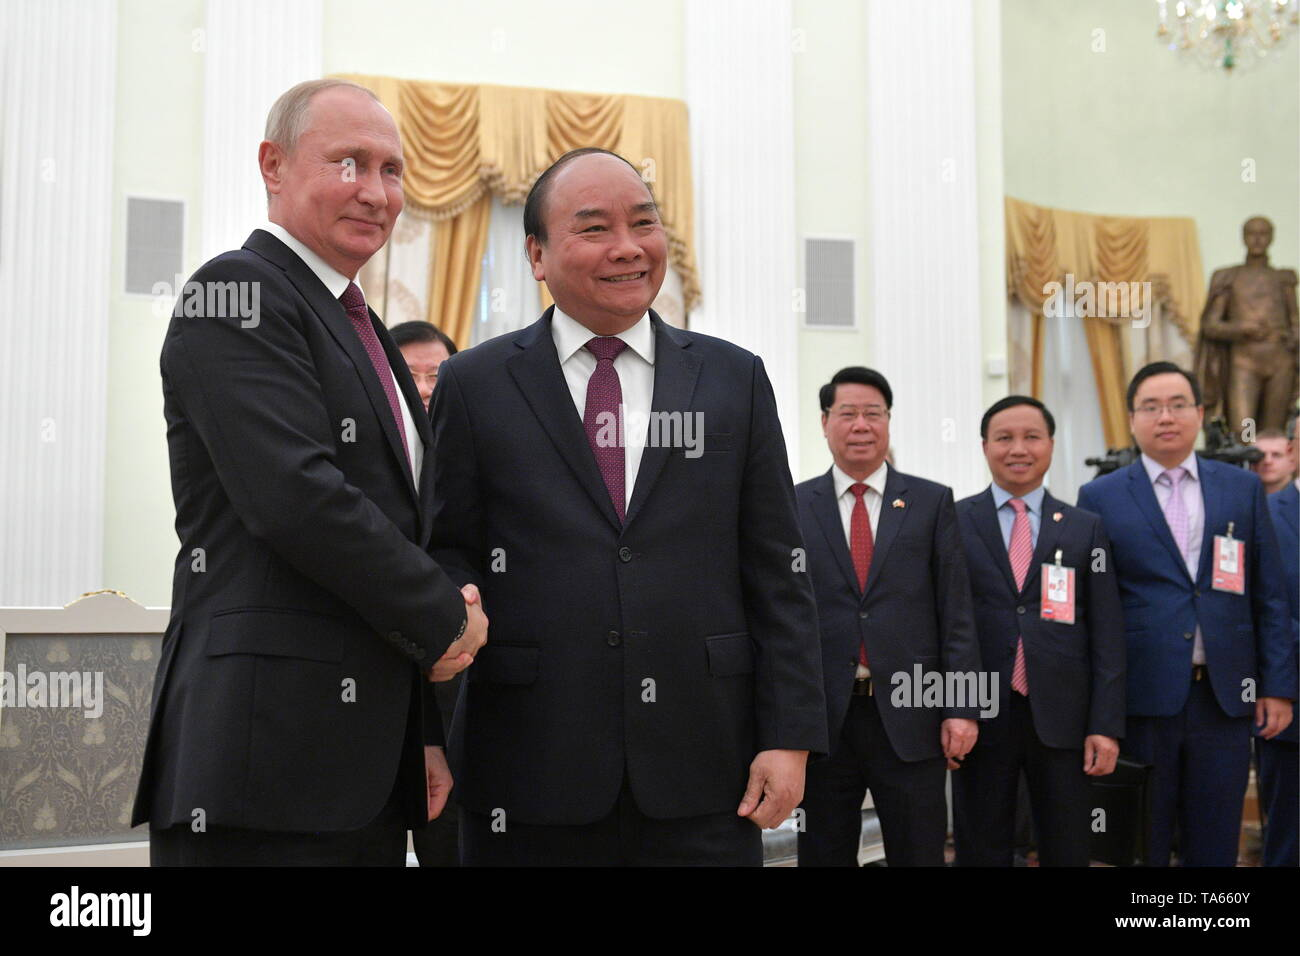 Moscow, Russia. 22nd May, 2019. MOSCOW, RUSSIA - MAY 22, 2019: Russia's President Vladimir Putin (L) and Vietnam's Prime Minister Nguyen Xuan Phuc shake hands during a meeting at the Moscow Kremlin. Alexei Druzhinin/Russian Presidential Press and Information Office/TASS Credit: ITAR-TASS News Agency/Alamy Live News - Stock Image